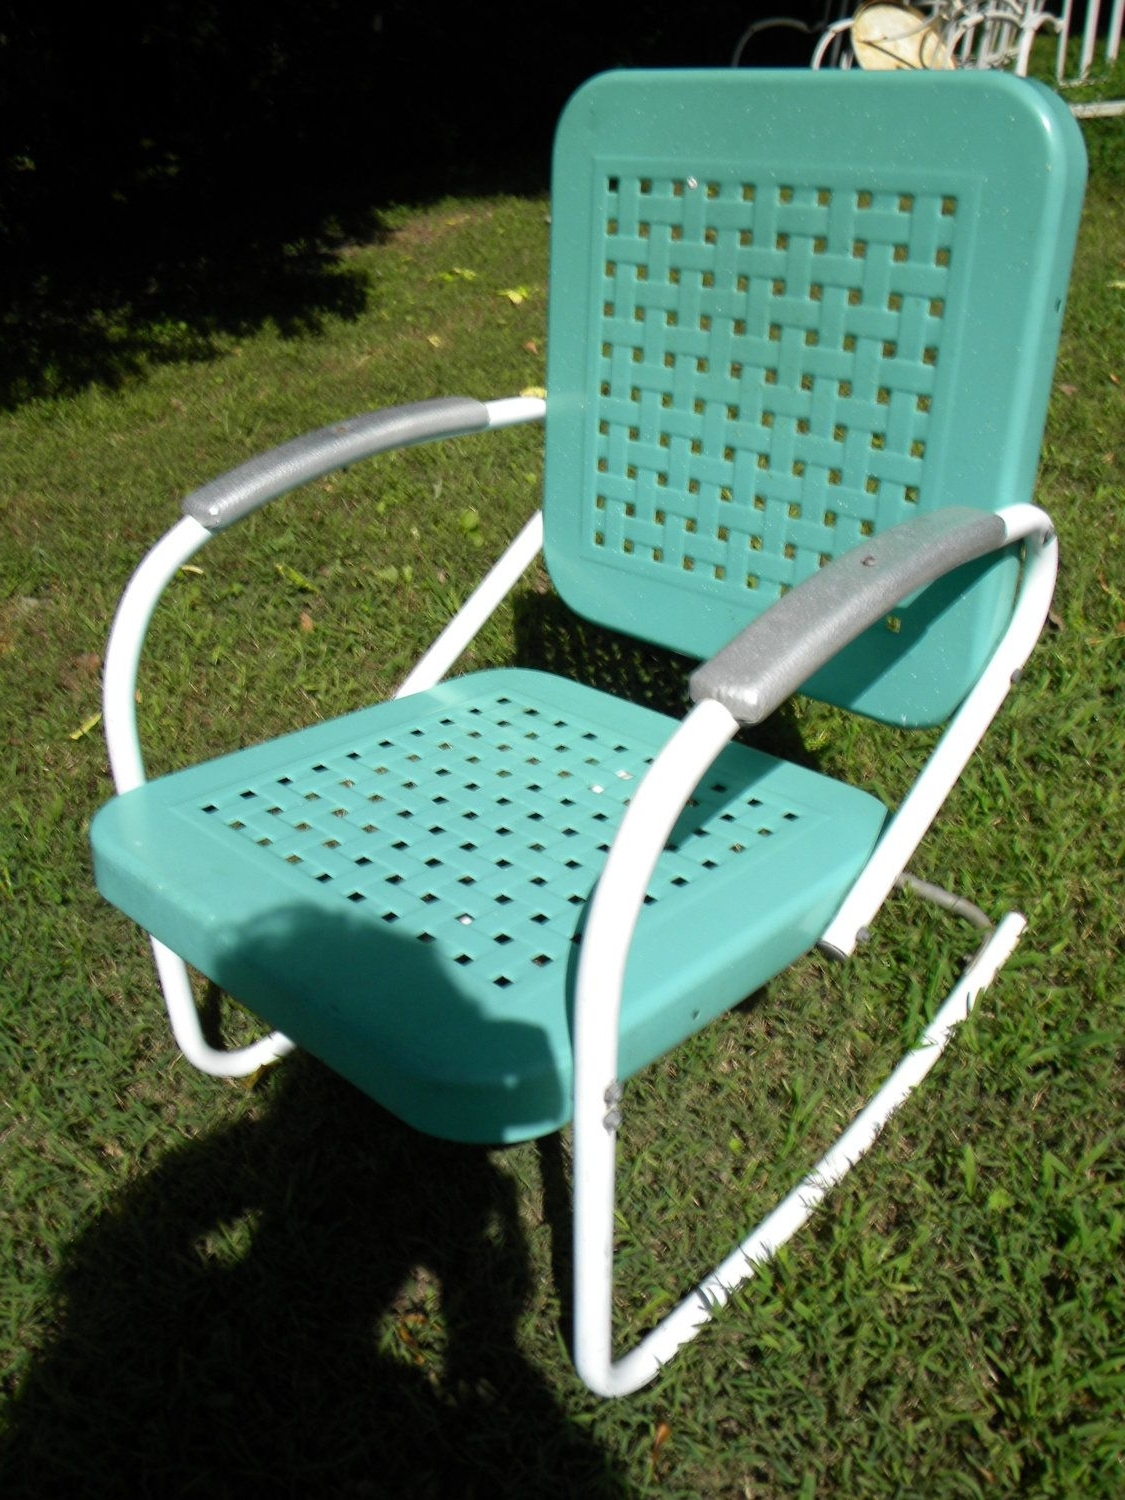 Recent Vtg 50S 60S Retro Outdoor Metal Lawn Patio Porch Rocking Chair Regarding Retro Outdoor Rocking Chairs (View 8 of 15)